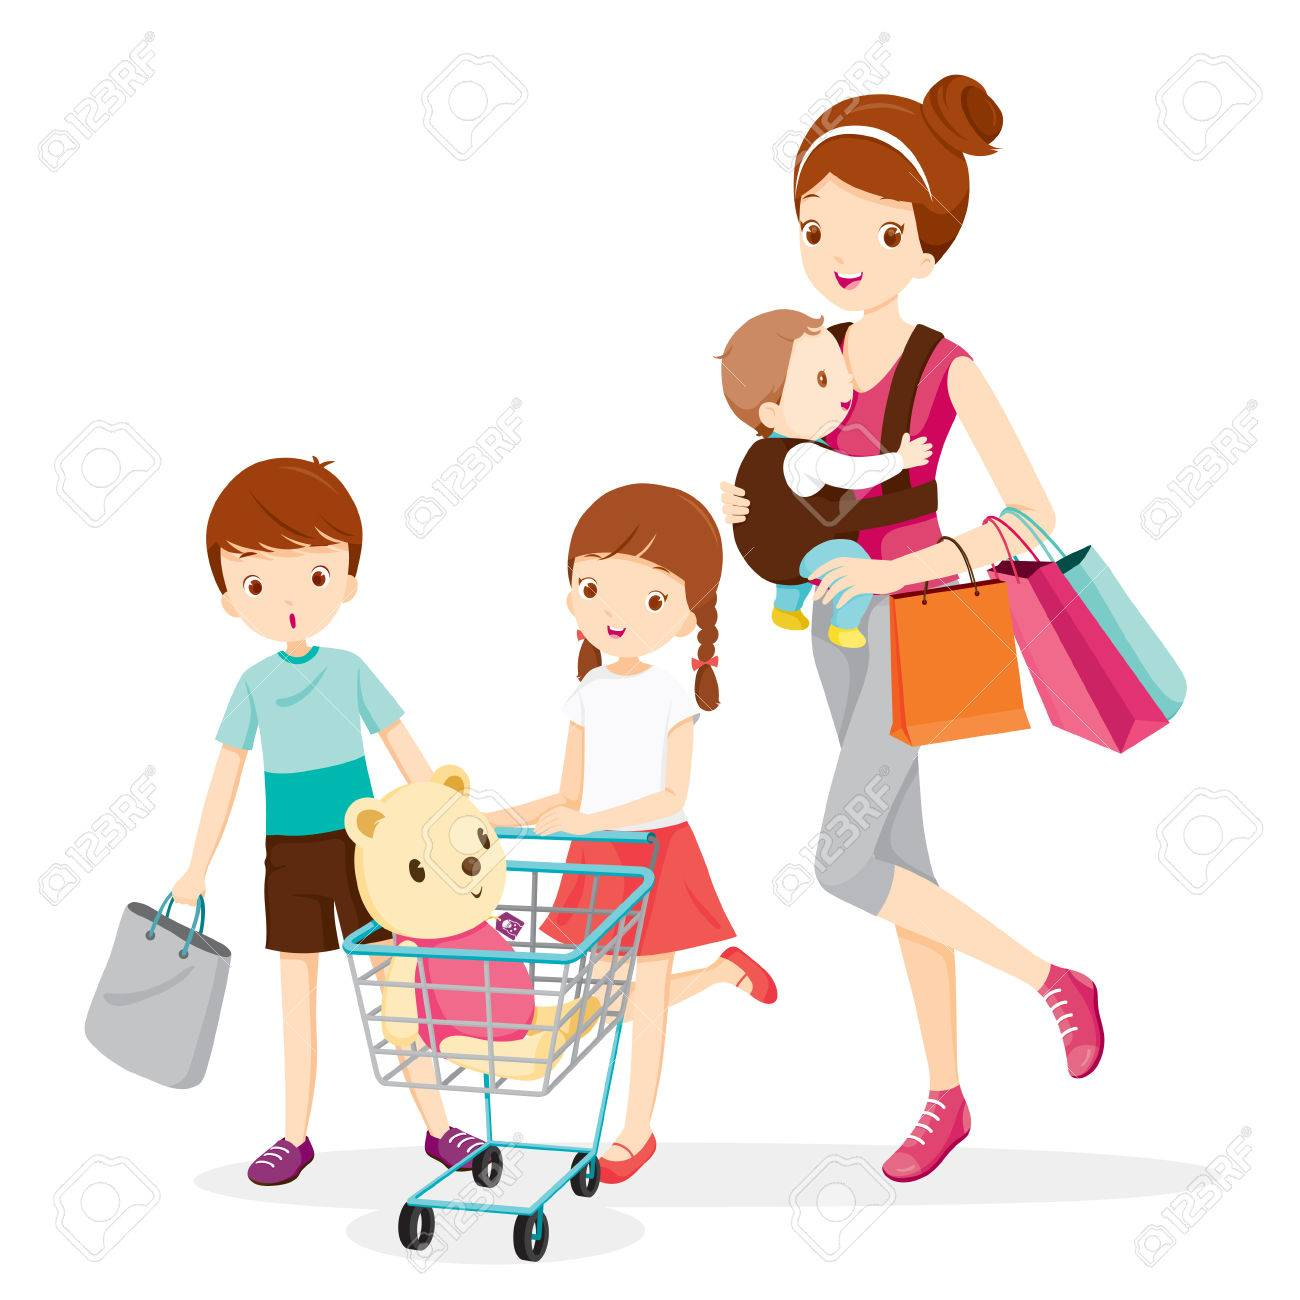 Mother And Children Shopping Together, Mother, Shopping, Retail, Family, Child, Shopping Cart, Pushcart, Trolley, Shopping Bag - 55425130